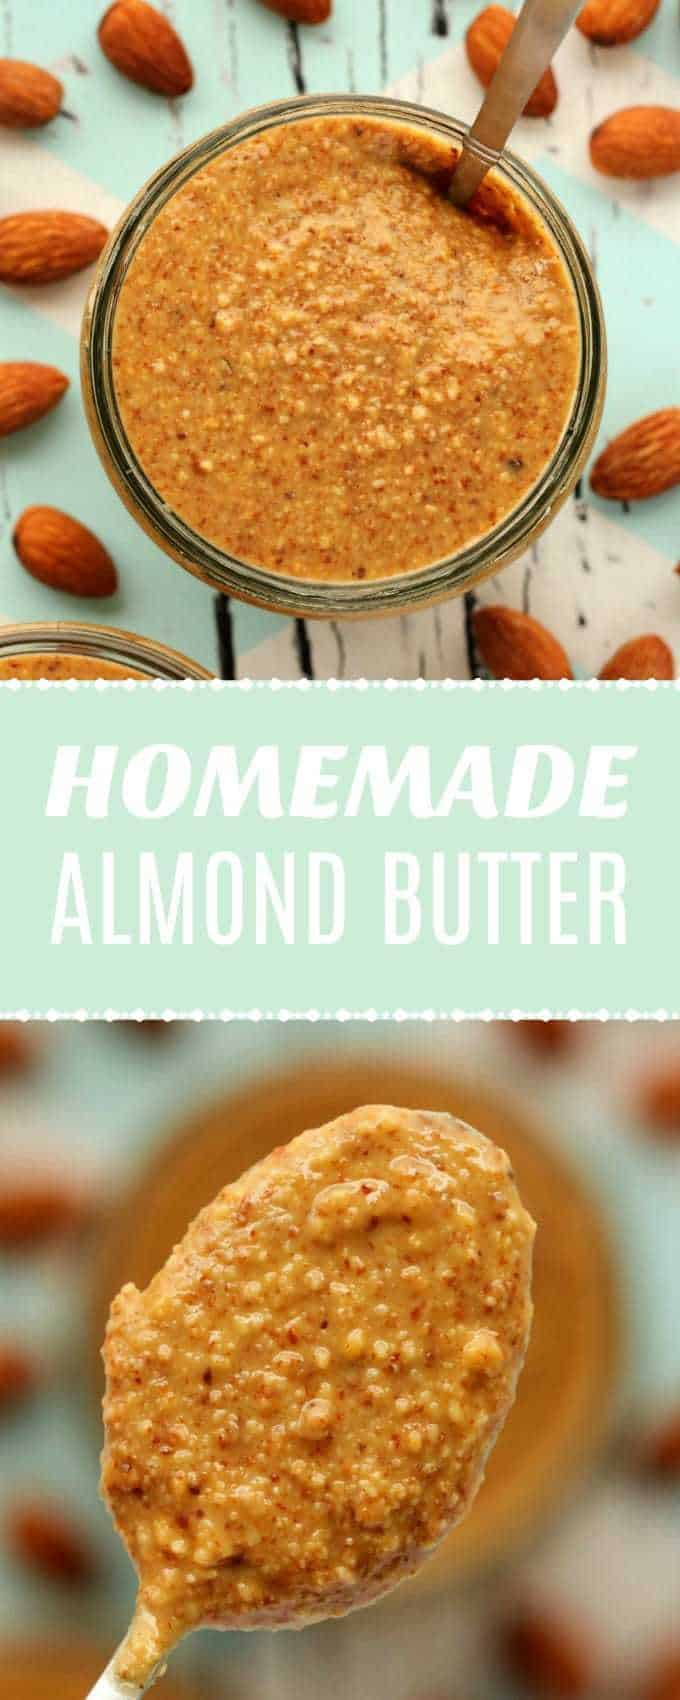 How to make almond butter. Easy 2-ingredient recipe for homemade almond butter, ready in 10 minutes! Vegan and gluten-free. | lovingitvegan.com